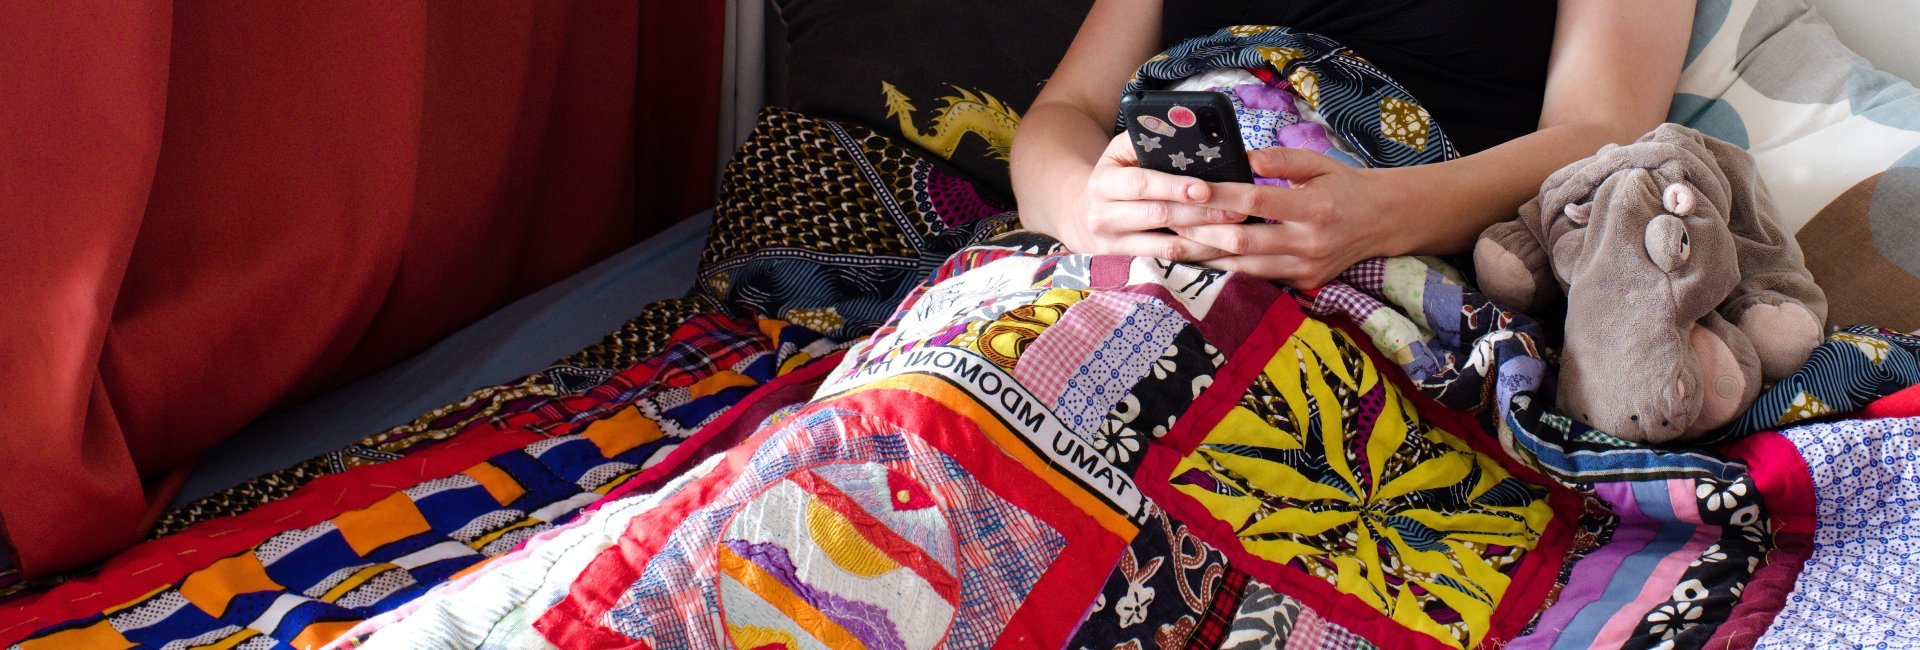 Rianne of Kick-Ass Quilts laying under her Kenyan quilt relaxing with her phone.